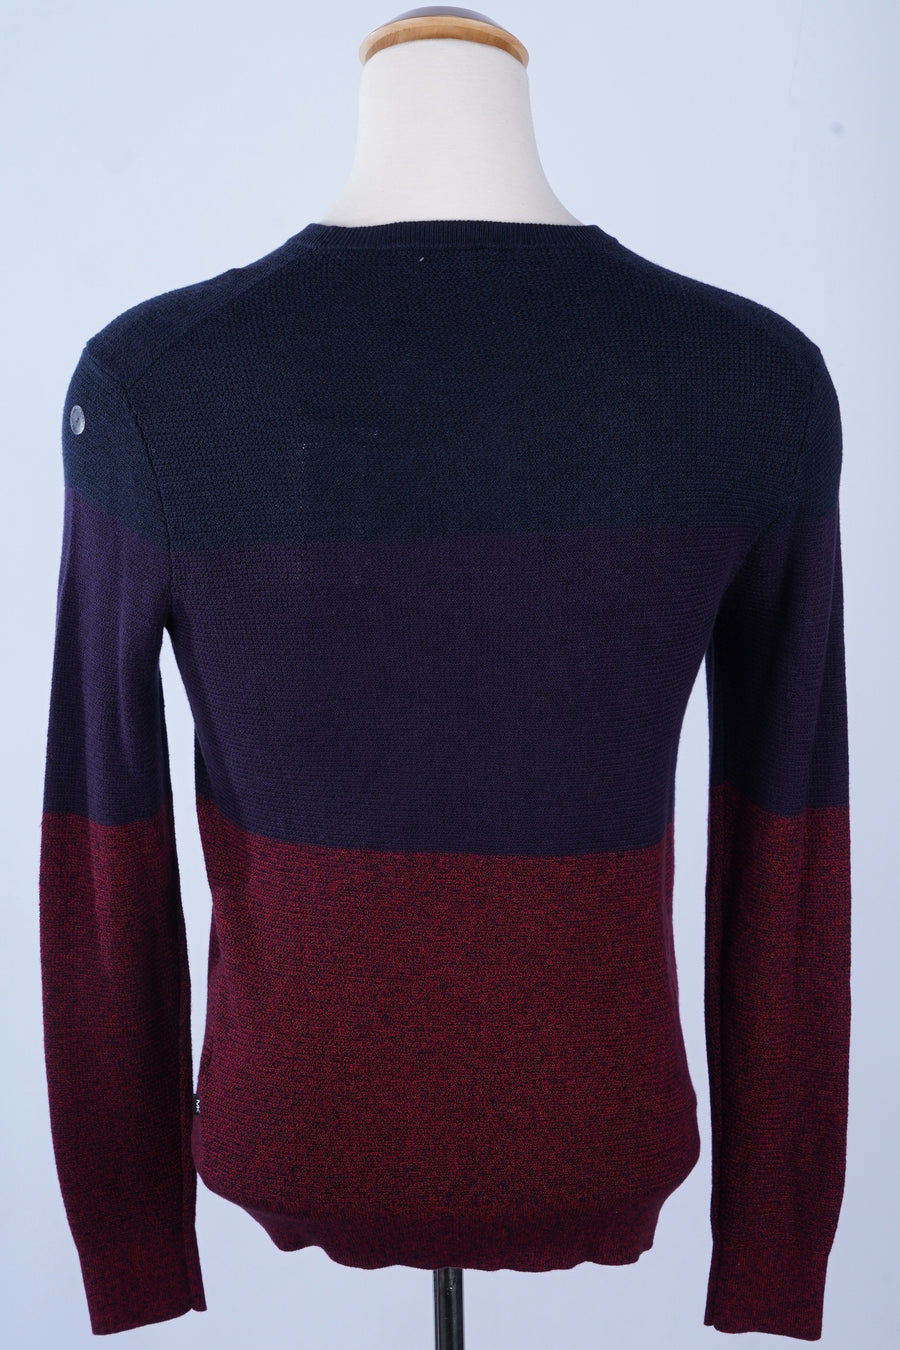 Moulinex Marled Colorblock Crewneck Sweater Size S